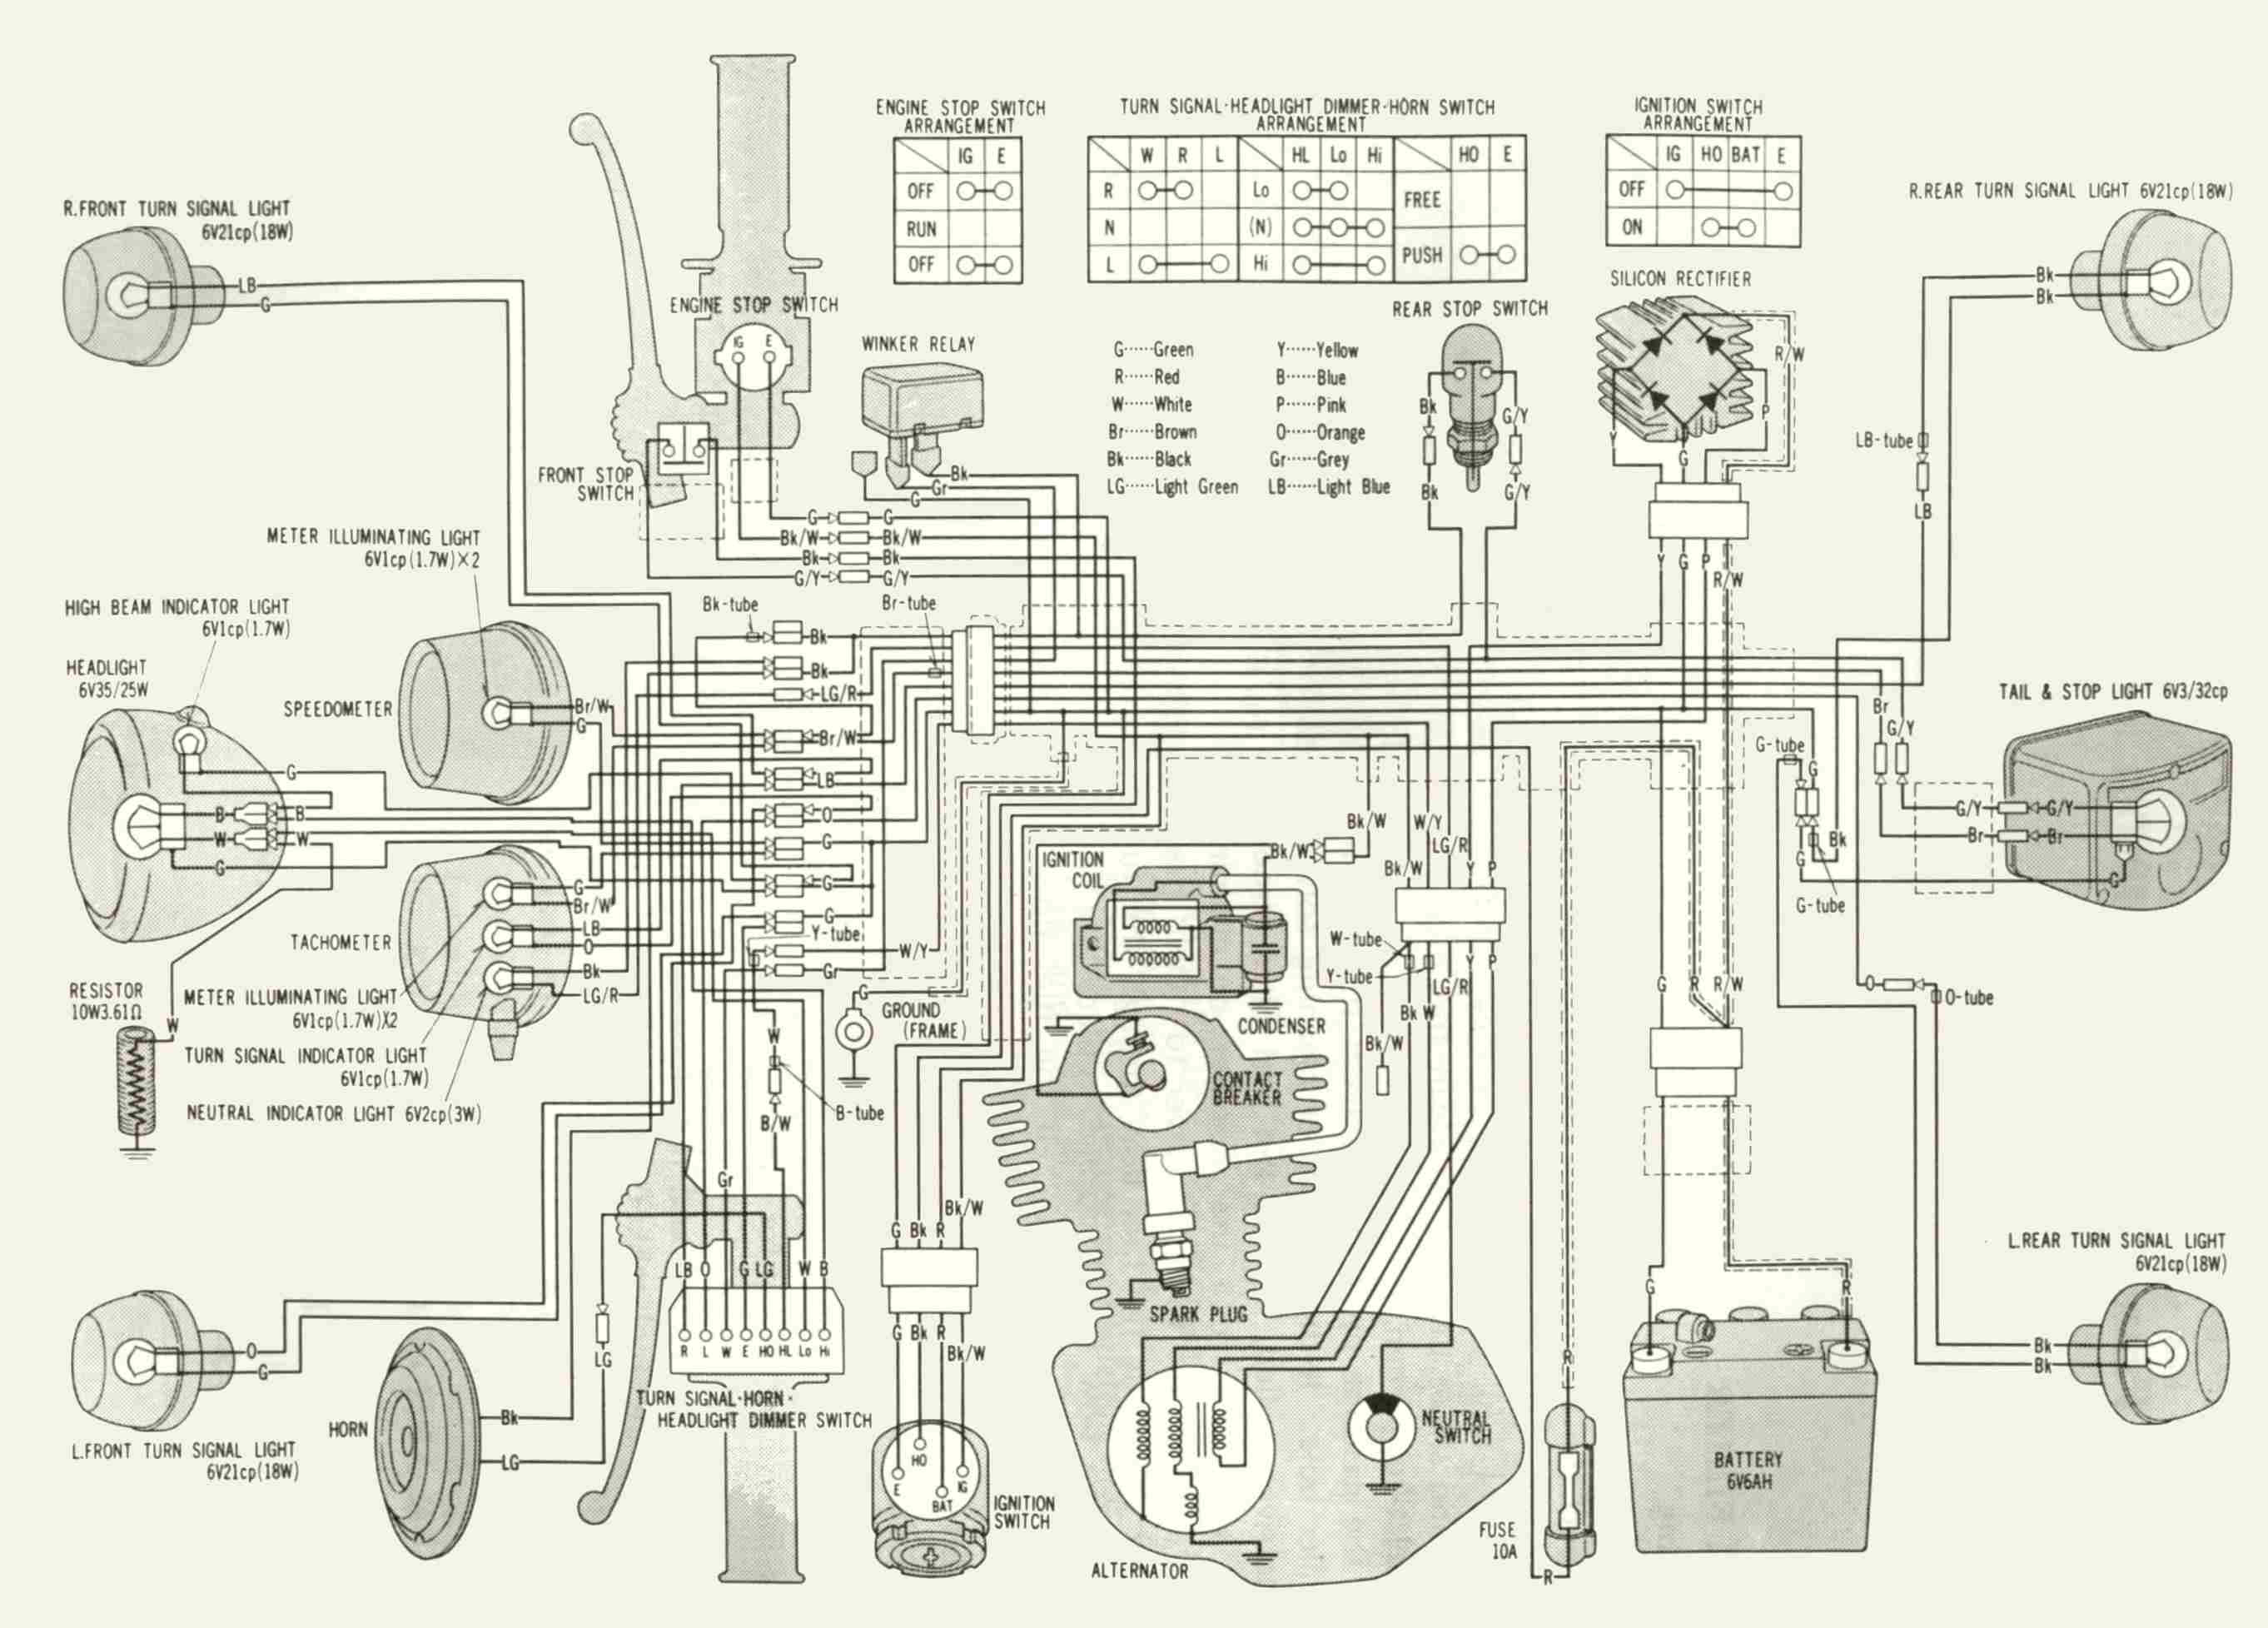 Wiring 1971 Ct90 Wiring Diagram Hd Quality Diagram69 Bruxelles Enscene Be